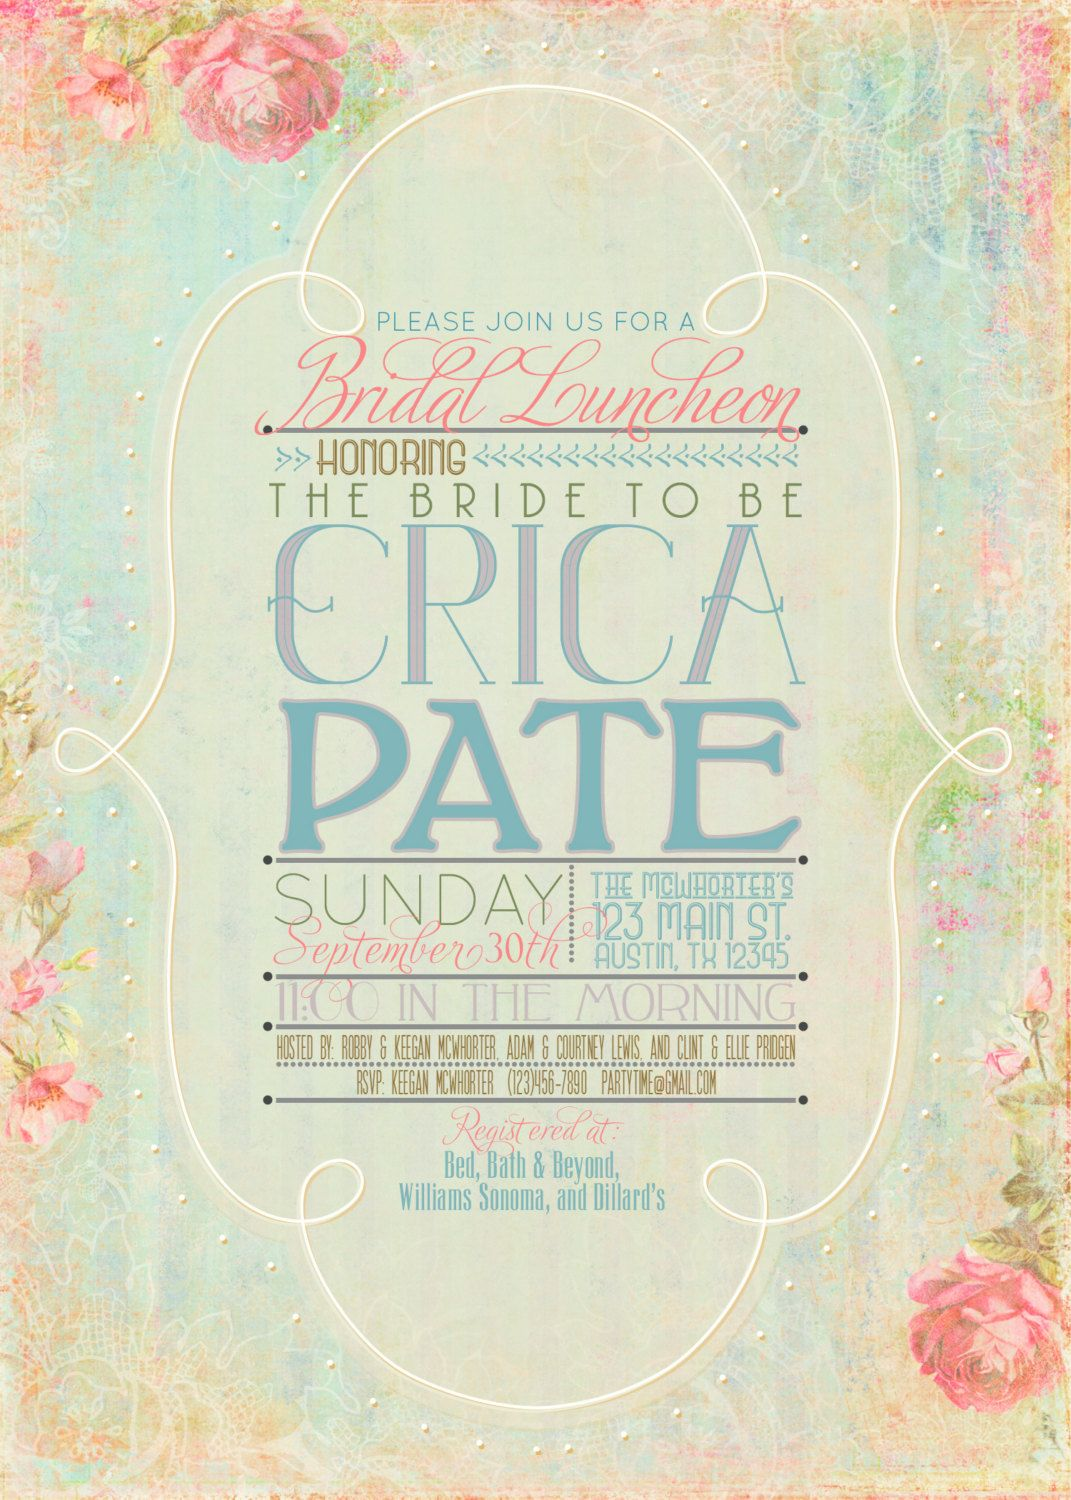 A beautiful, romantic vintage-inspired invitation perfect for a garden party, bridal or baby shower, or tea party.